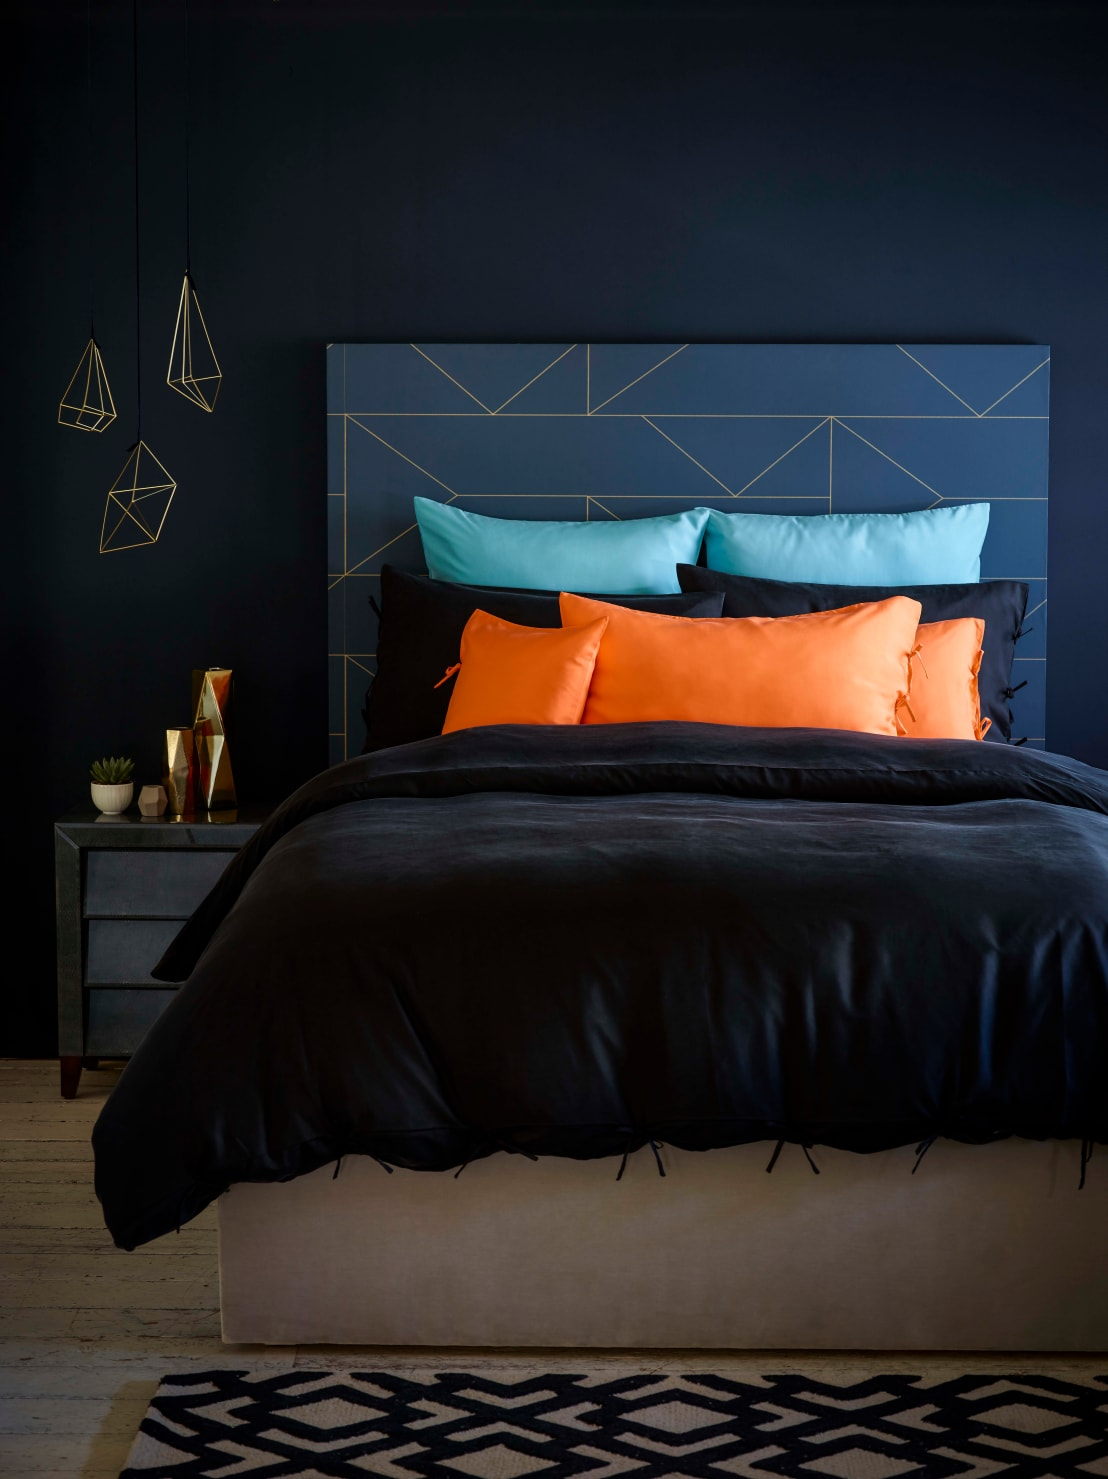 aufr umen in 5 minuten mit diesen tricks geht s richtig schnell. Black Bedroom Furniture Sets. Home Design Ideas